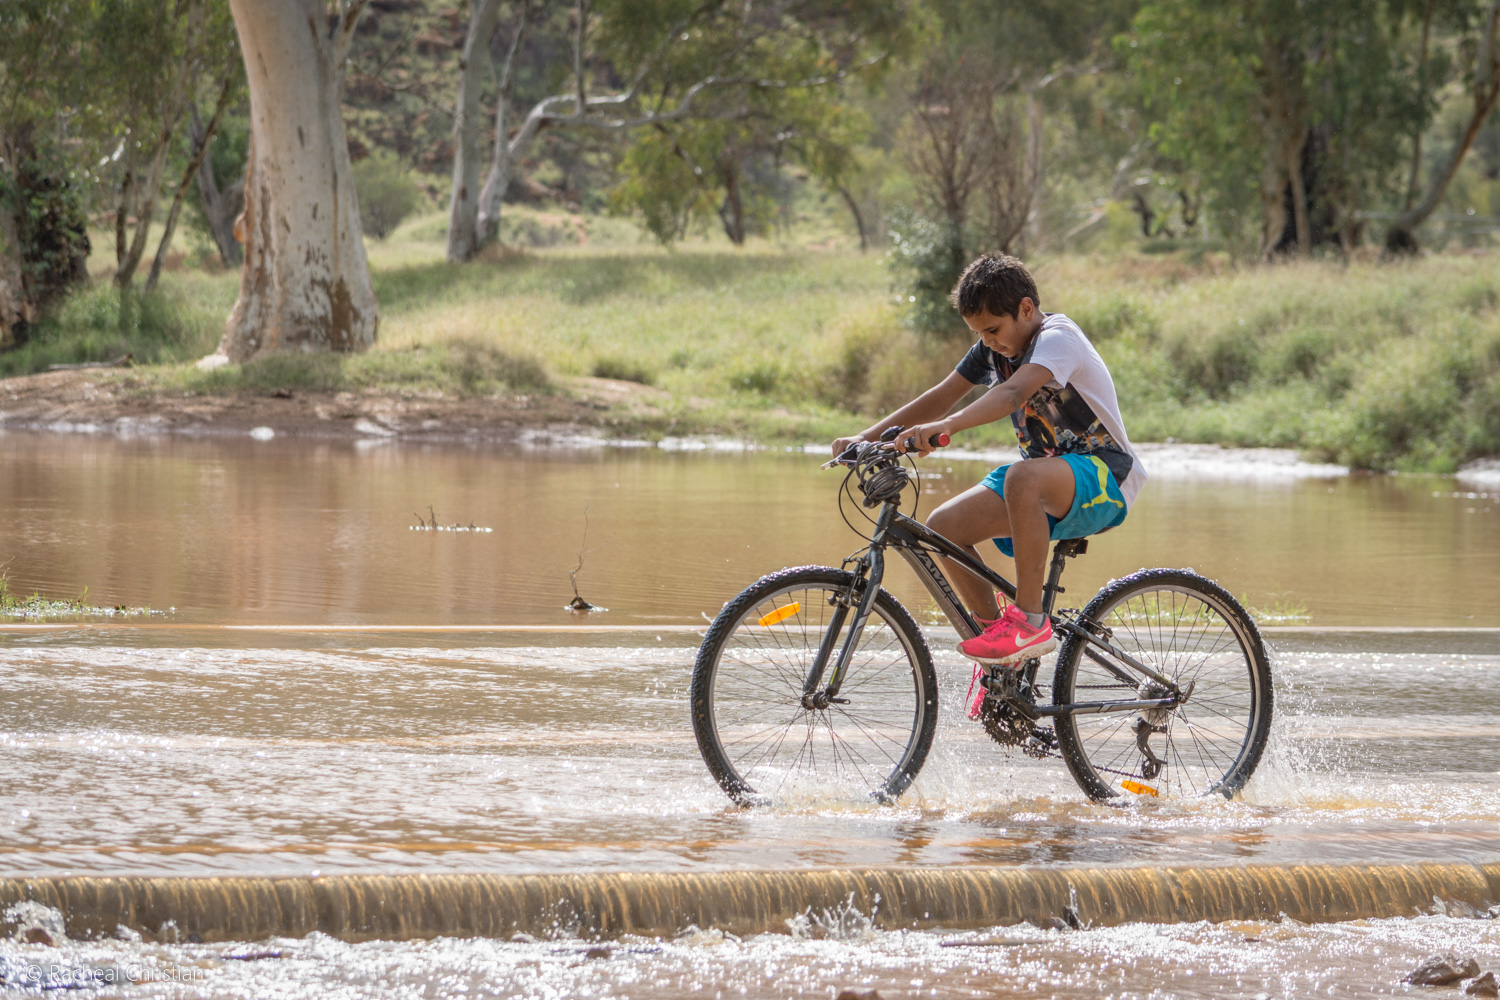 Todd River Begins To Flow